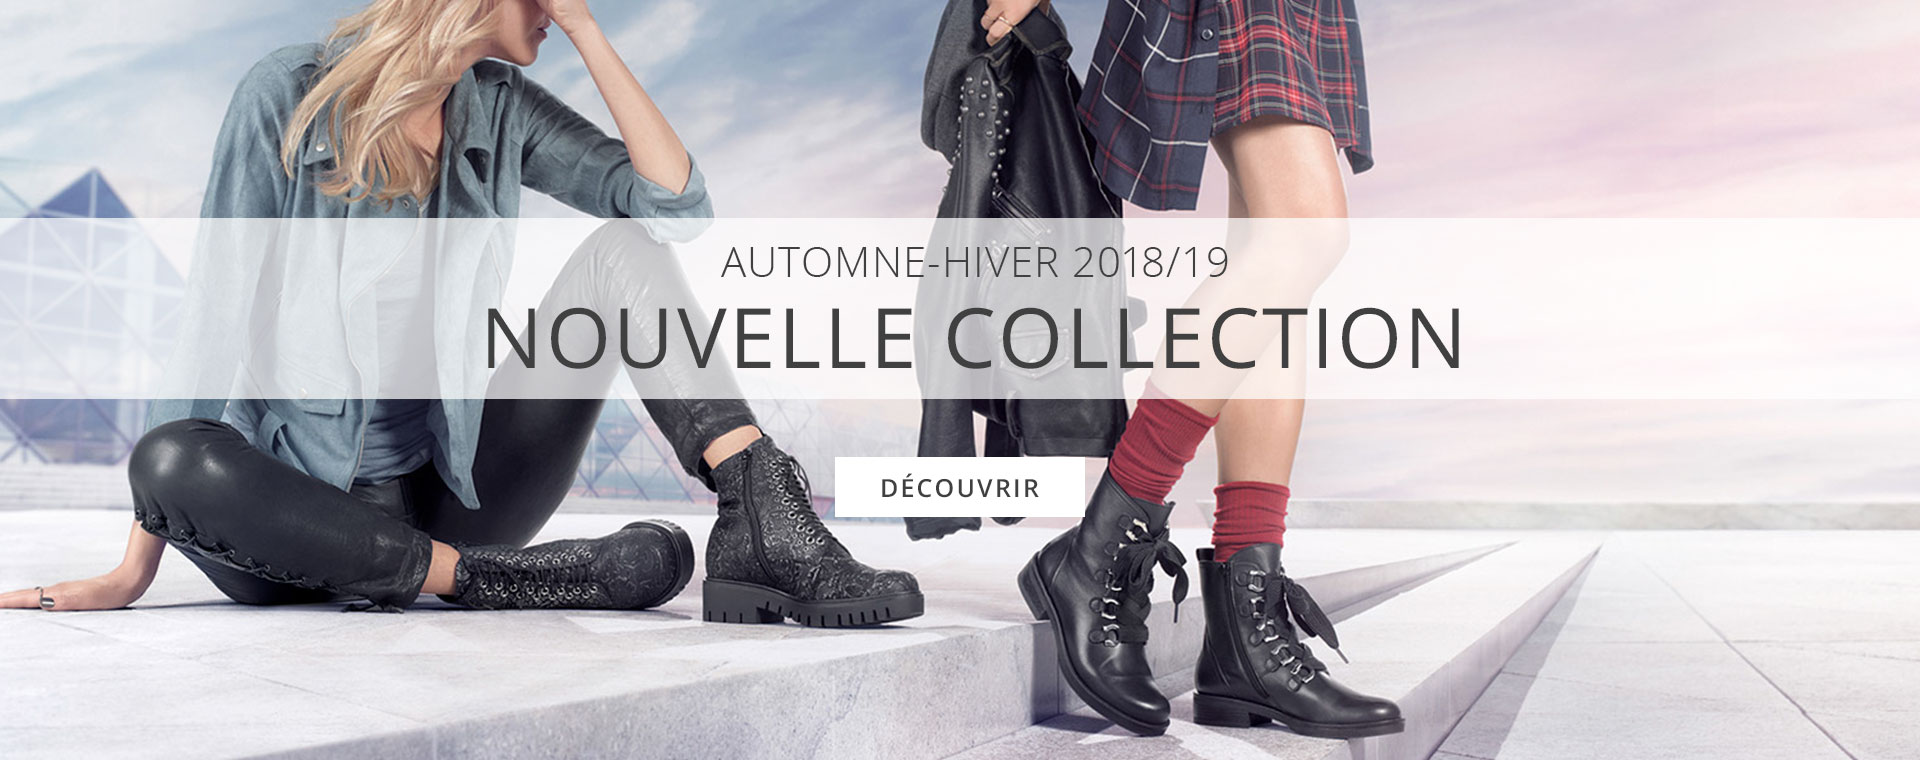 NOUVELLE COLLECTION AH18